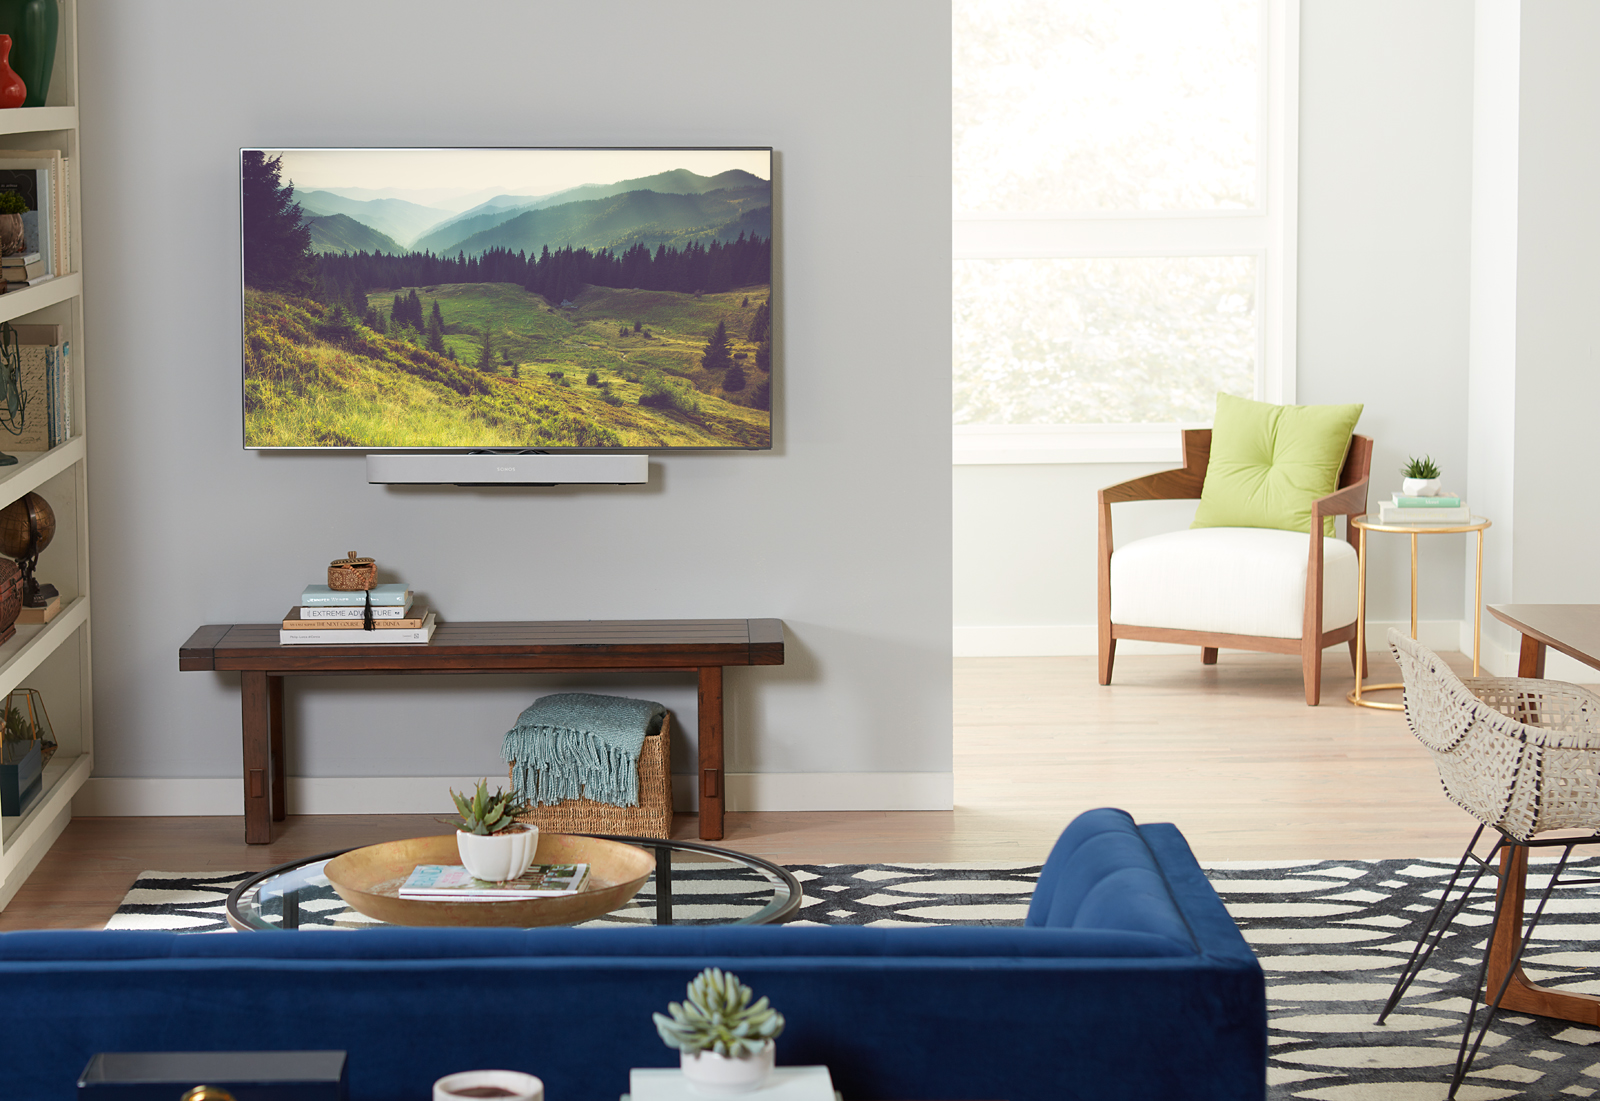 What to Put Under Mounted TV